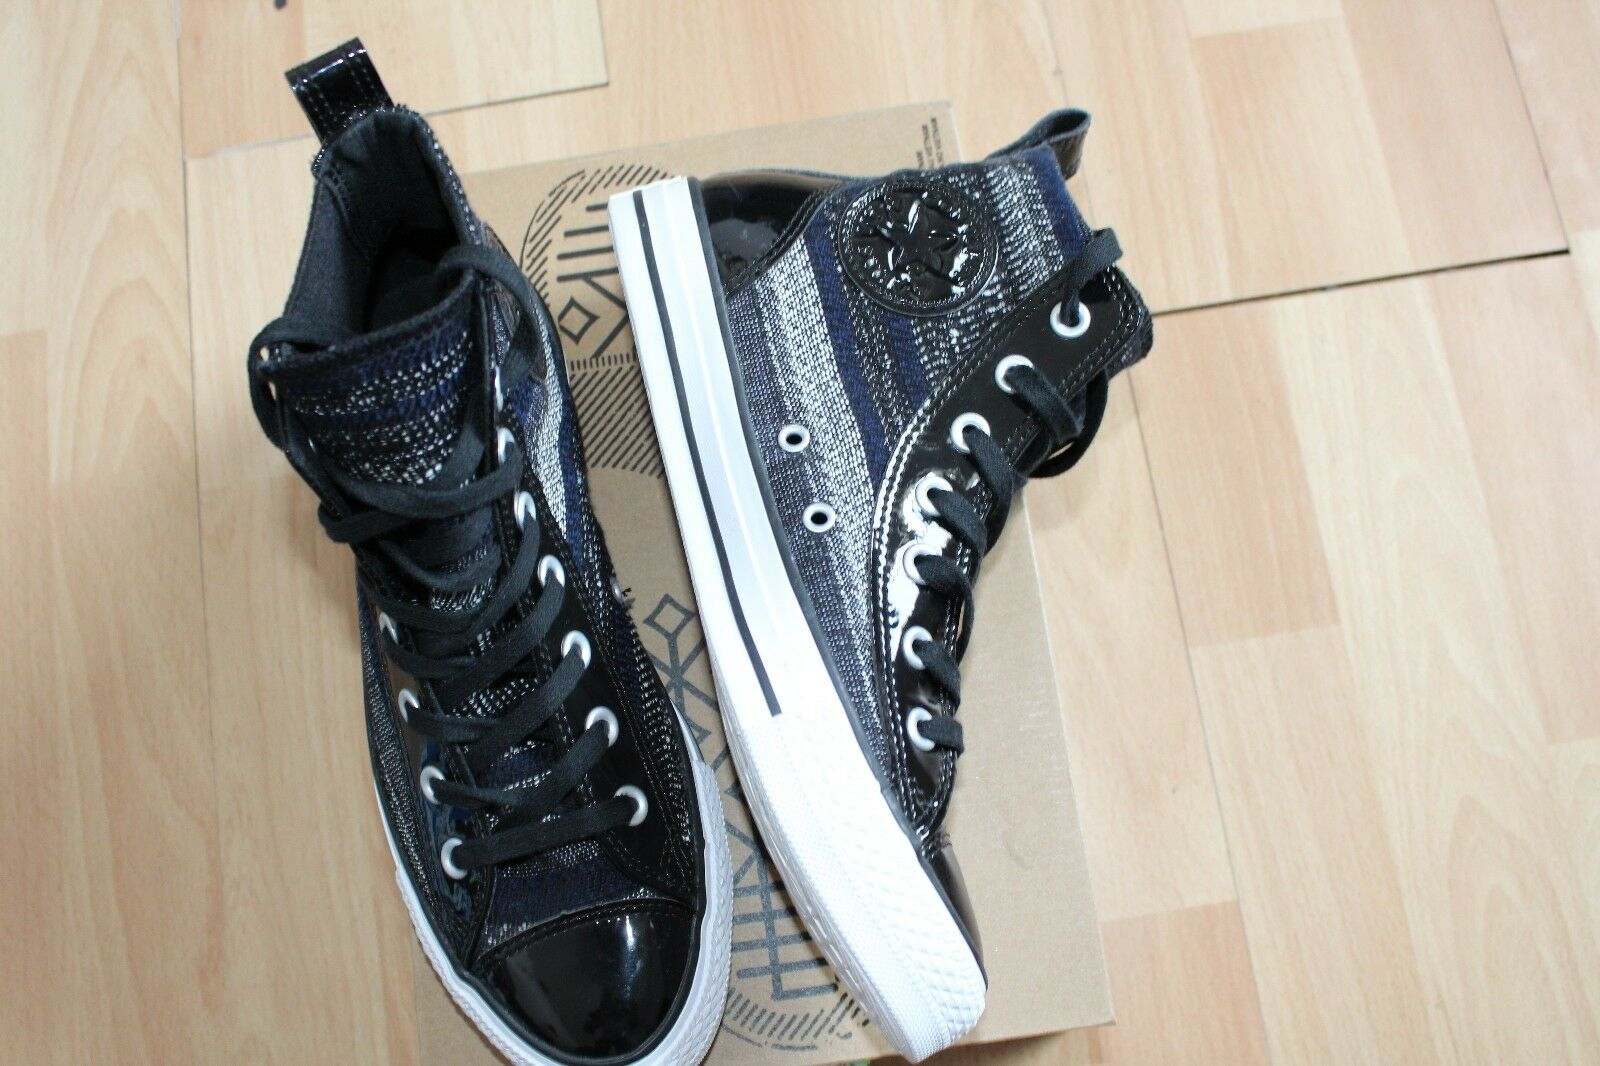 NEW WOMENS CONVERSE SZ 8 SHOES BLACK CT CHELSEE HI 549596C